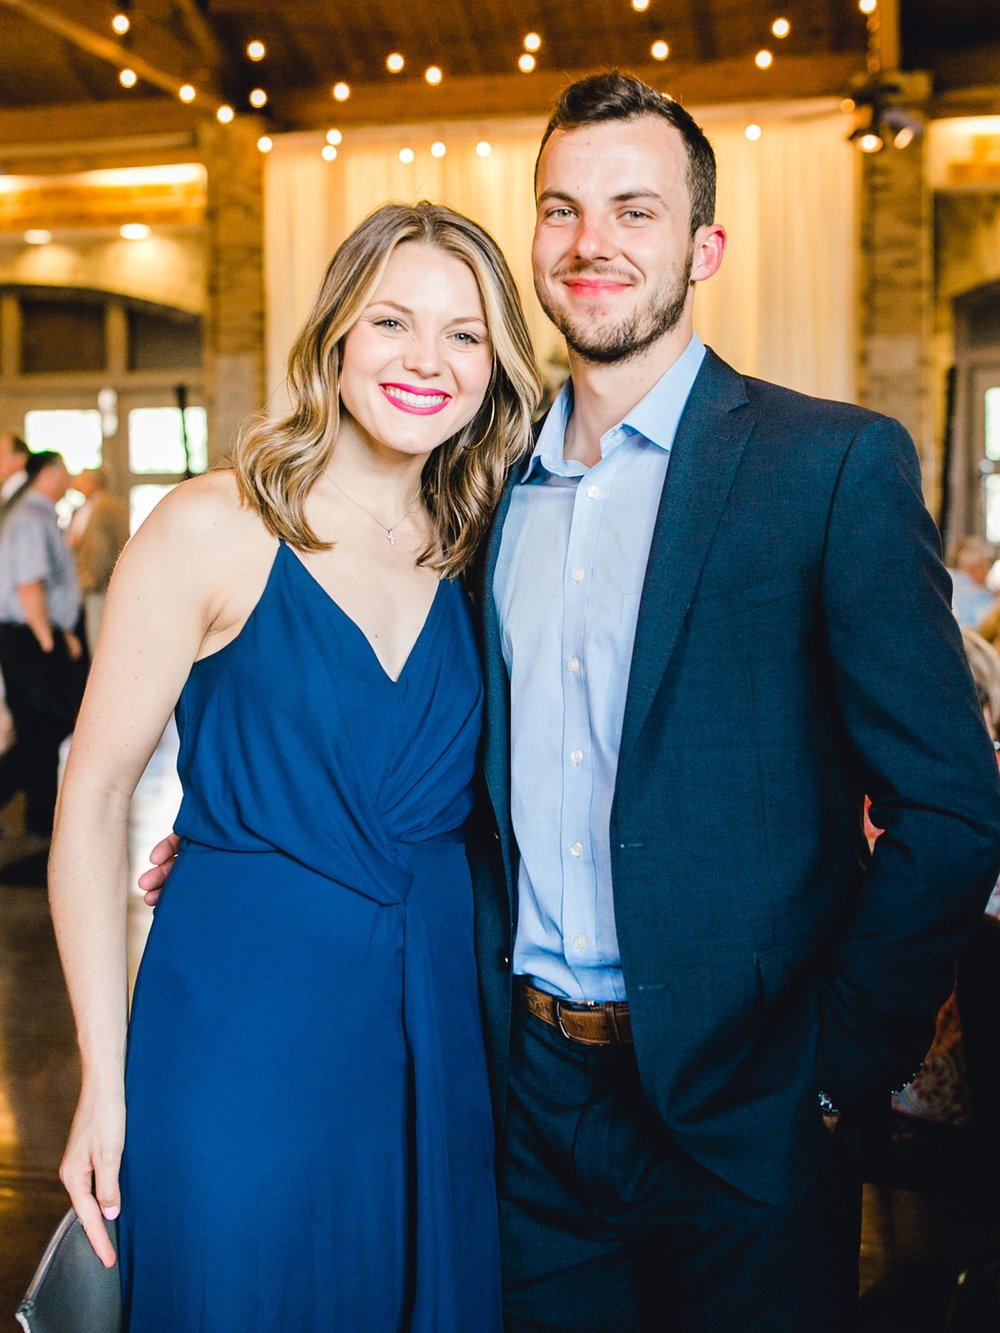 MADI_AND_WILL_STEPHENS_ALLEEJ_LUBBOCK_PHOTOGRAPHER_TEXAS+TECH+FRAZIER_ALUMNI0180.jpg